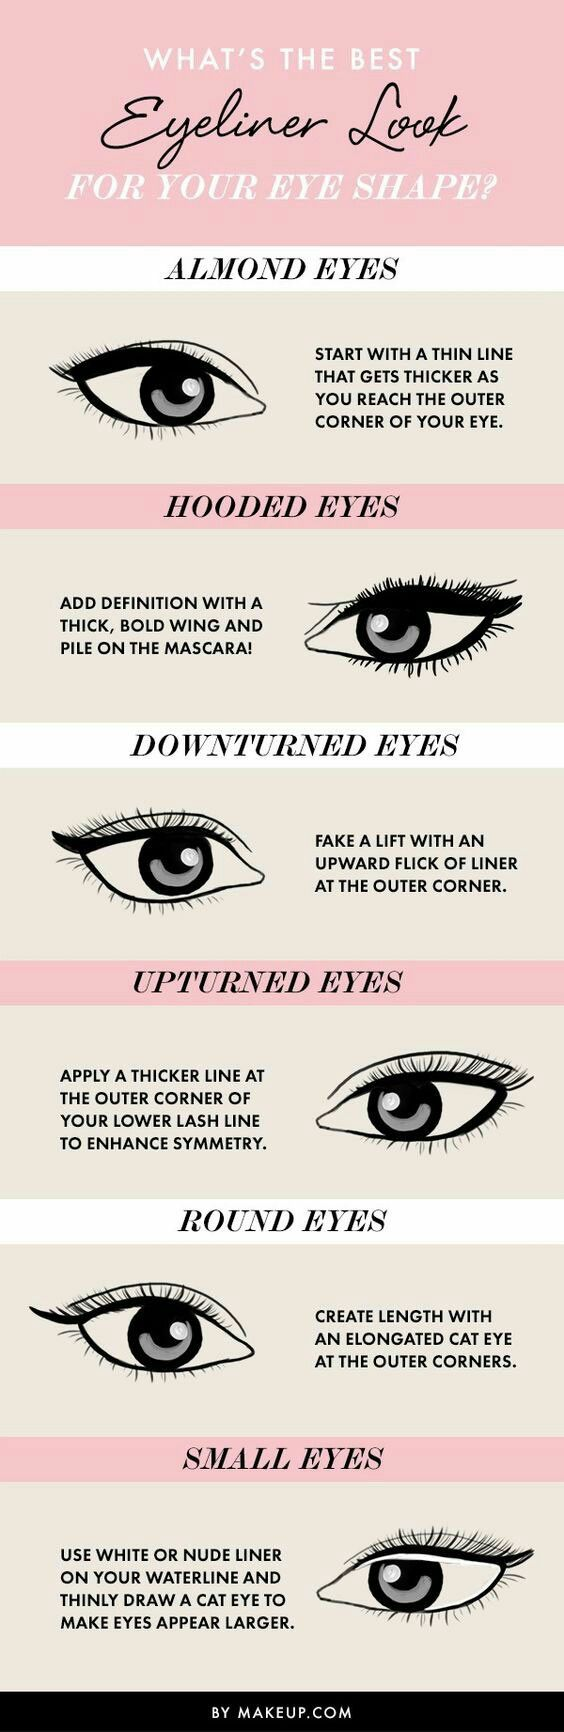 What's the Best Eyeliner Look For Your Eye Shape? Almond, Hooded, Downturned, Upturned, Round, Small / eye makeup